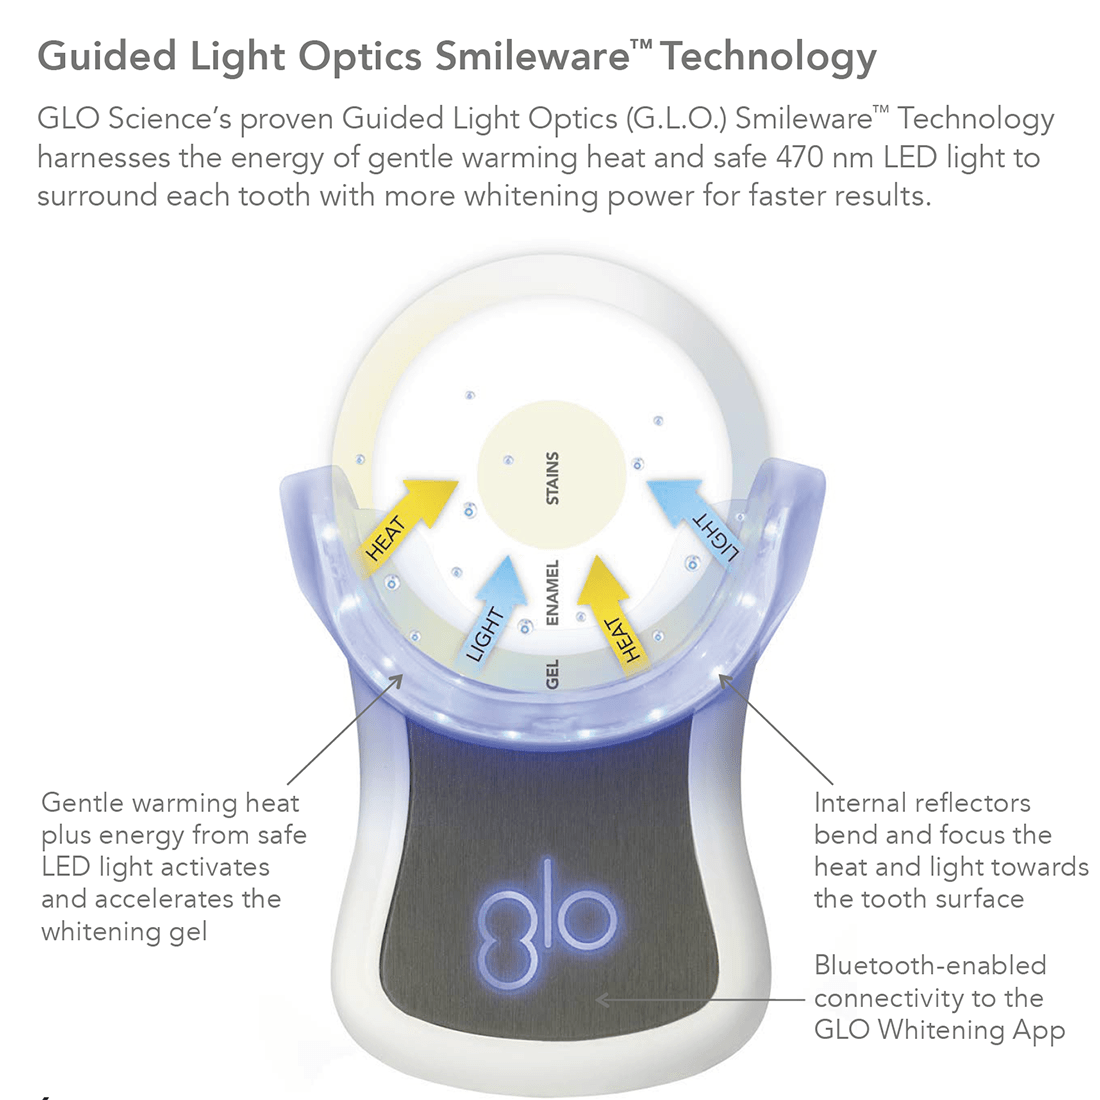 GLO Science PRO White Platinum Wireless Teeth Whitening Device Kit - AVAILABLE ONLY AT YOUR DENTIST